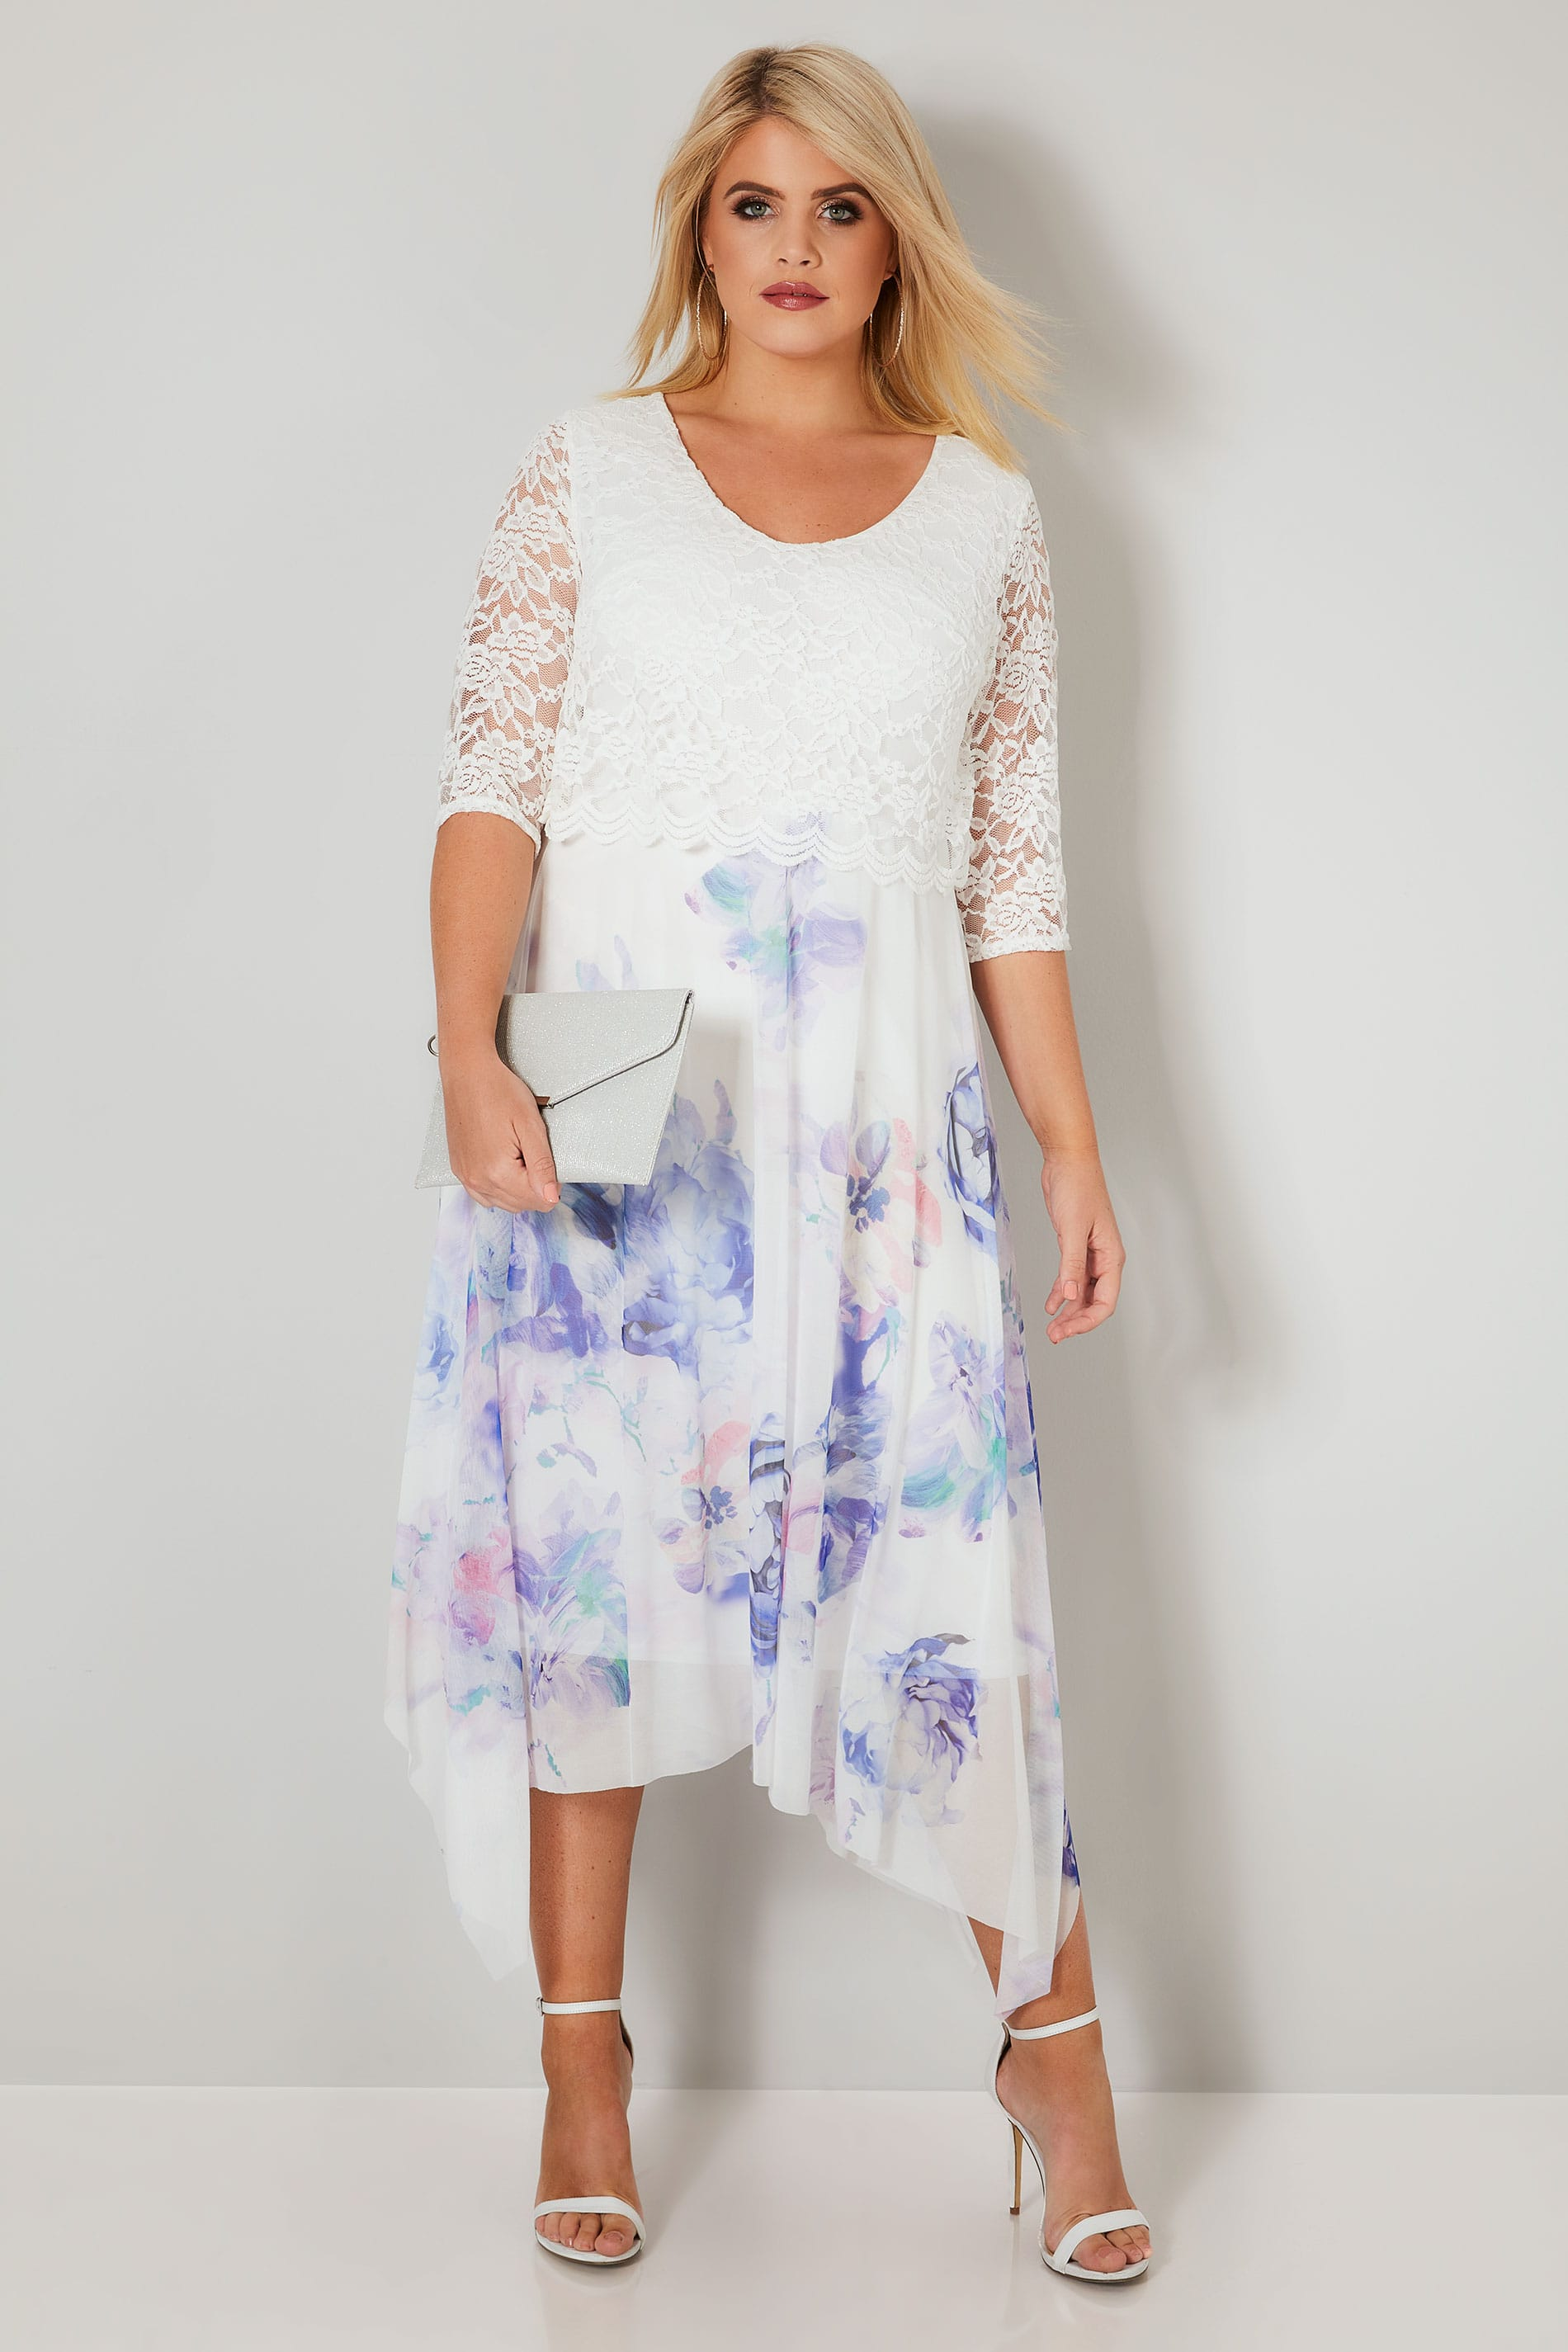 YOURS LONDON White & Blue Floral Dress With Lace Overlay ...